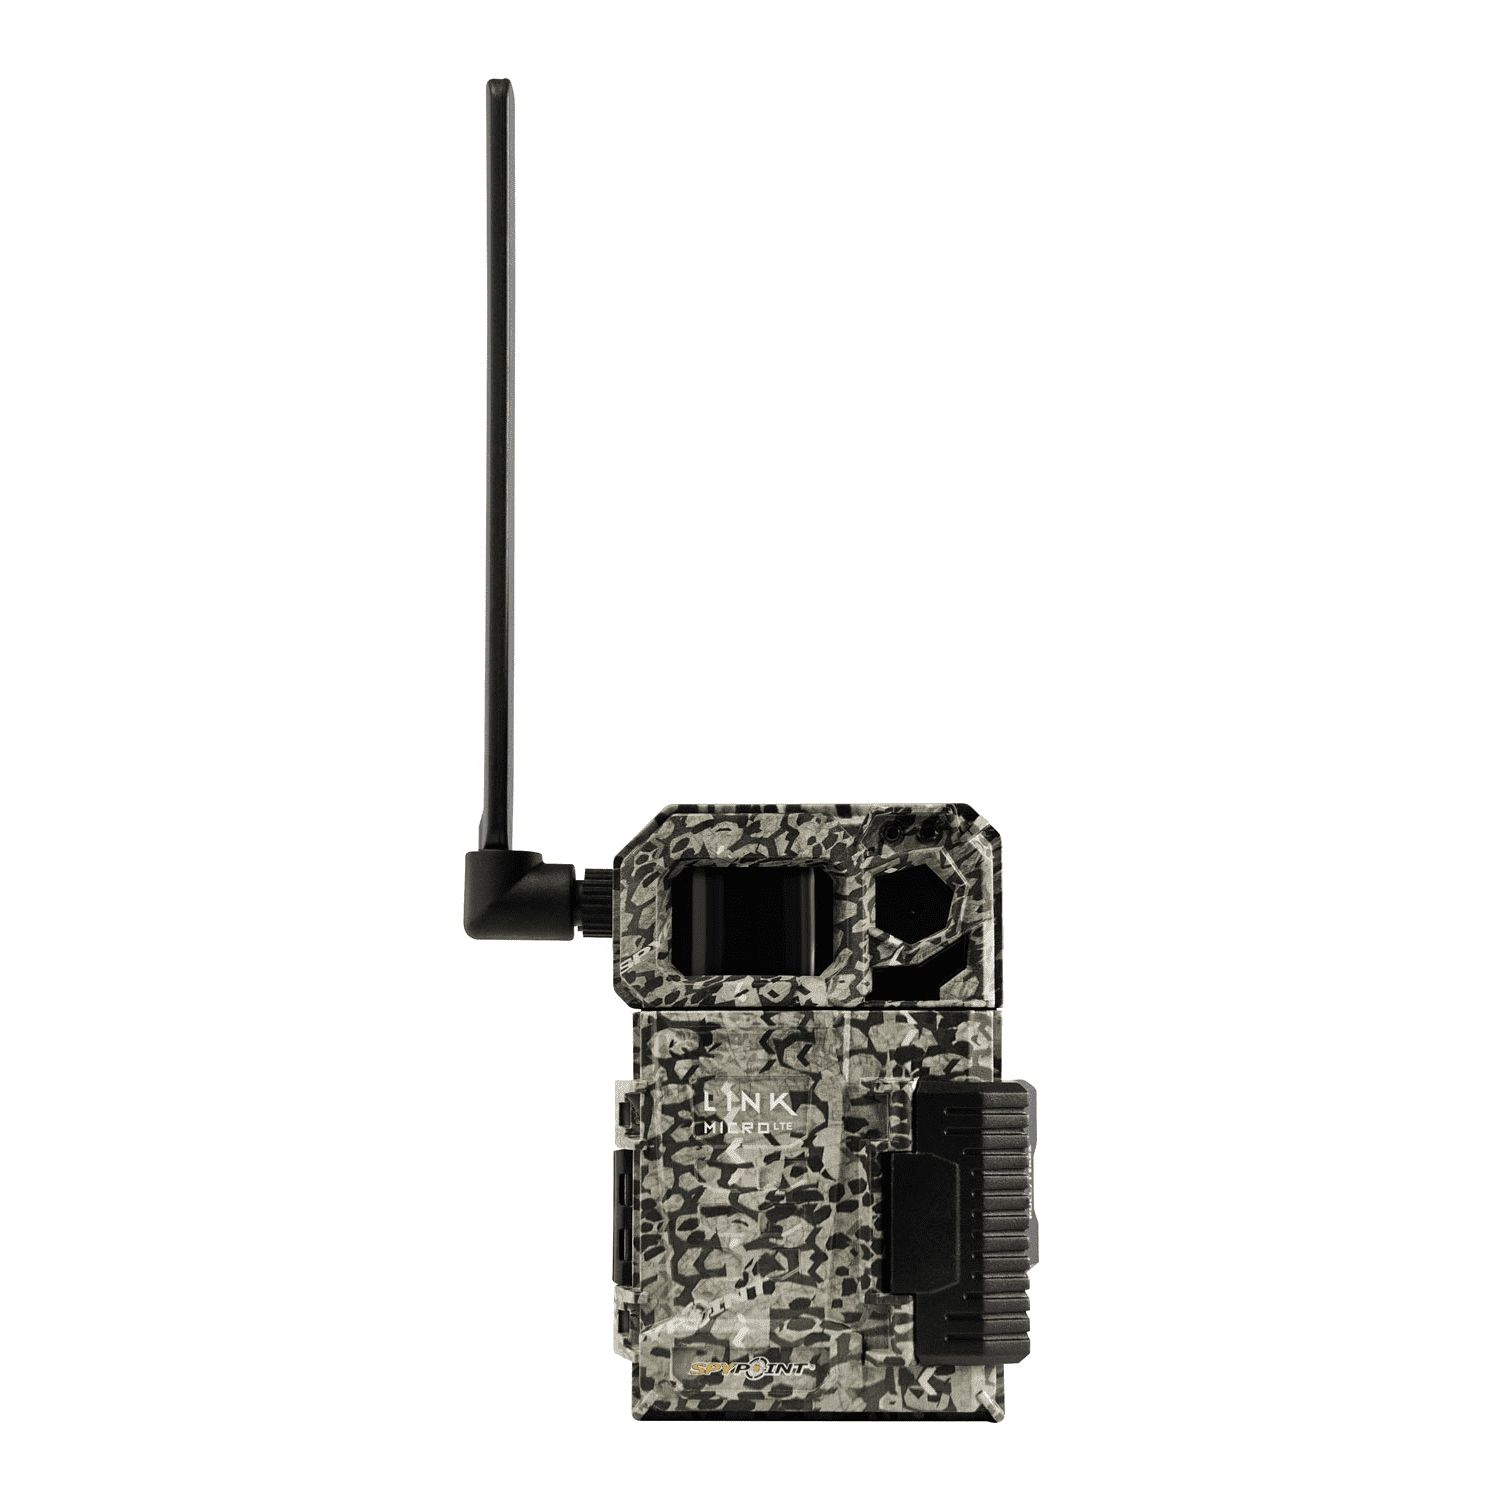 Spypoint Link Micro LTE Cellular Trail Camera